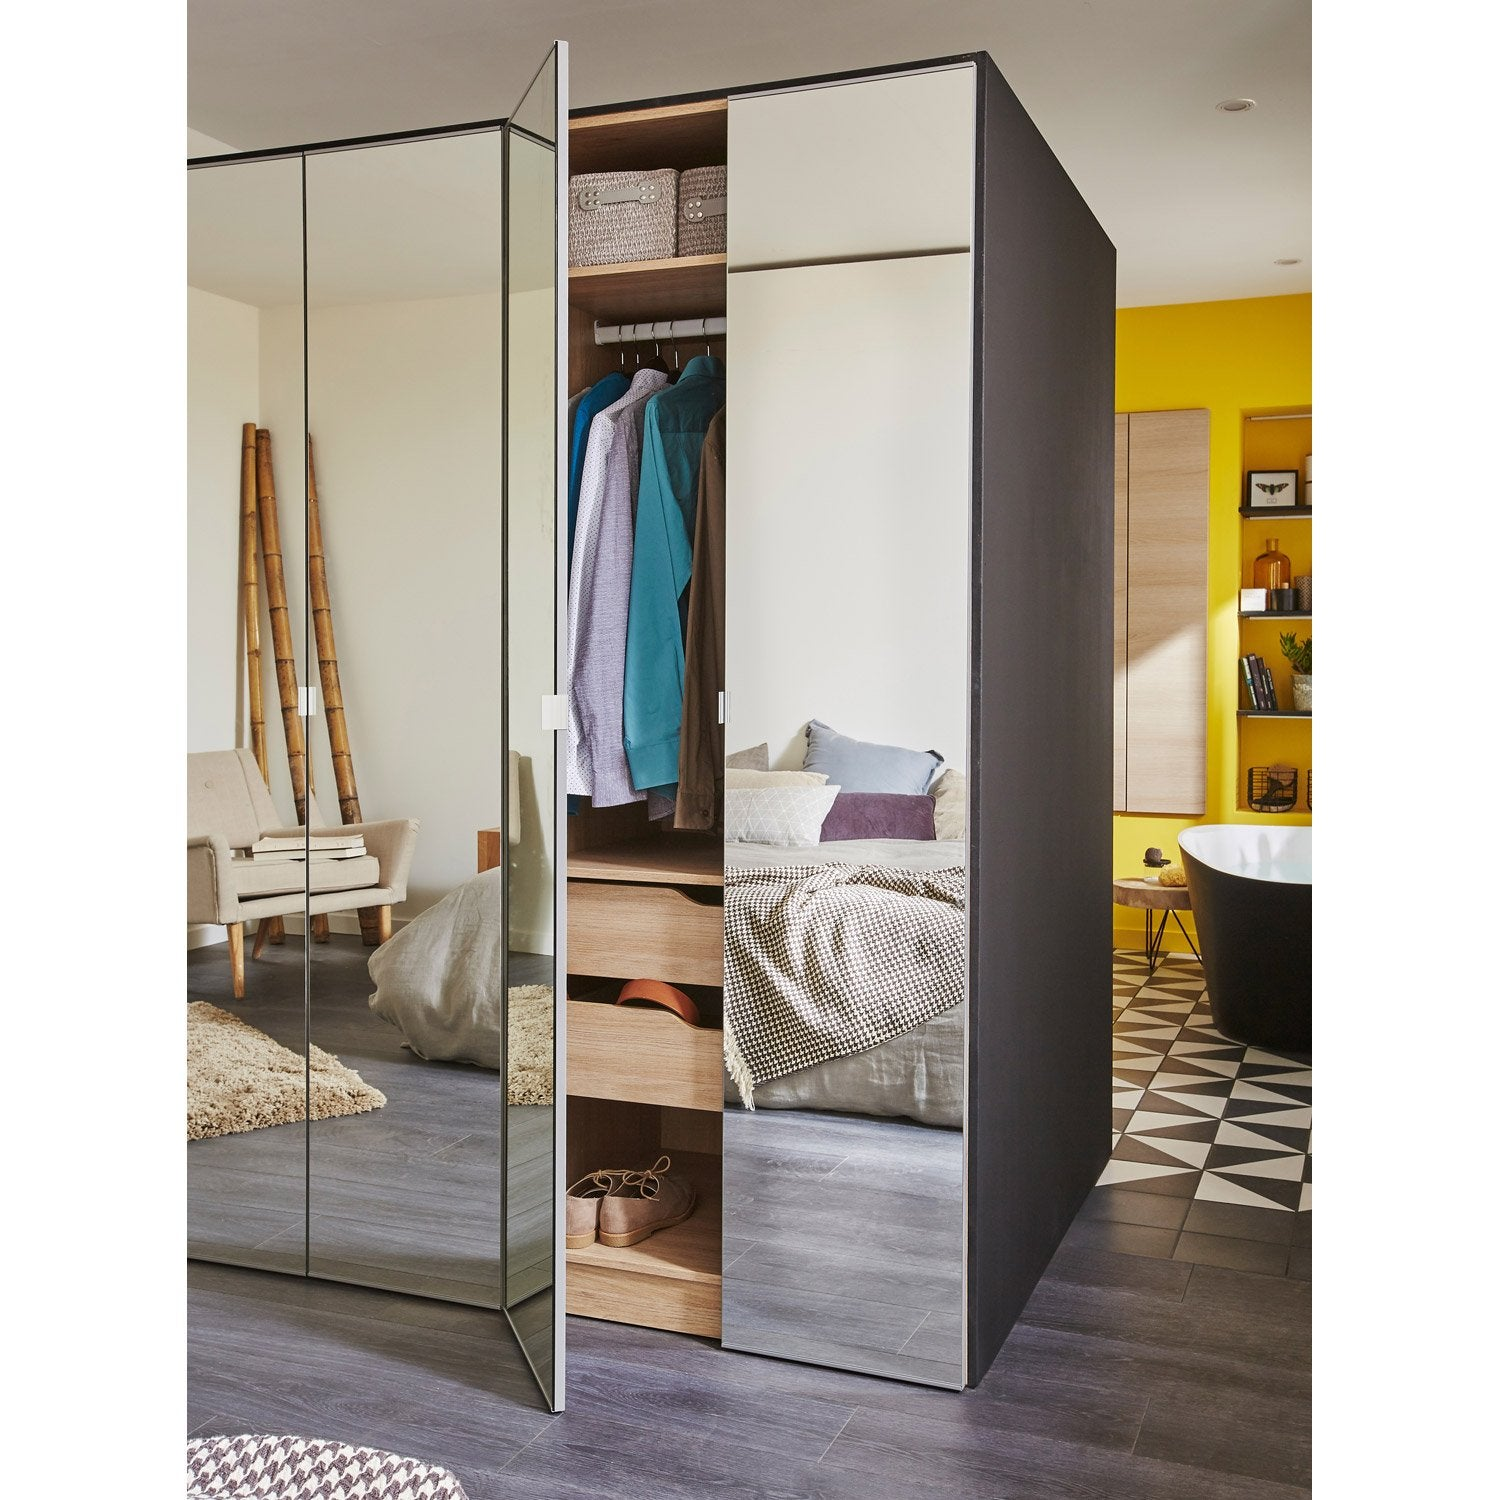 porte battante spaceo home 200 x 40 x 1 6 cm miroir leroy merlin. Black Bedroom Furniture Sets. Home Design Ideas